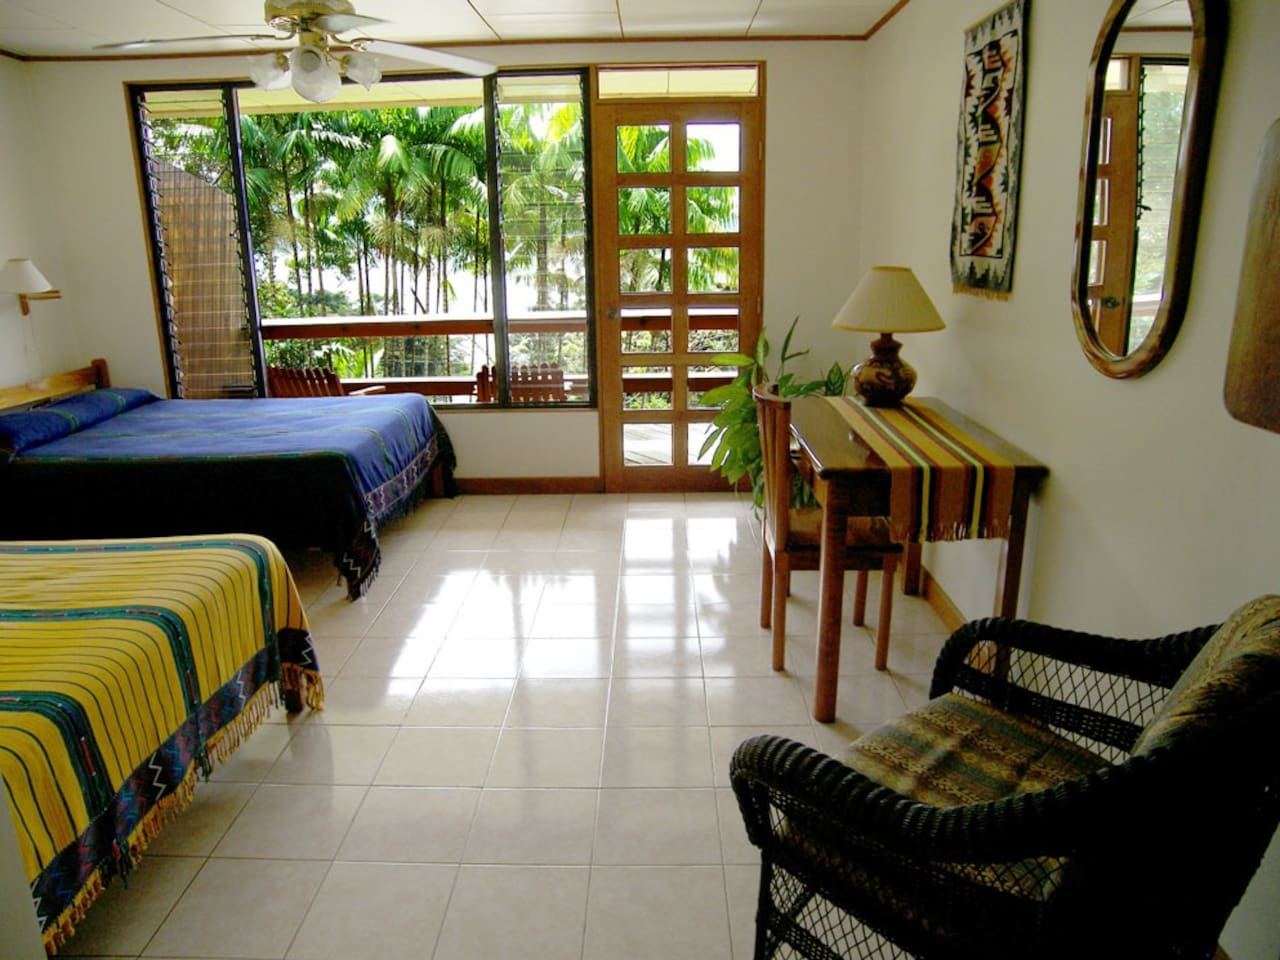 2 beds (1 queen, 1 double), private entrance, private bathroom, private balcony with excellent views of Lake Arenal